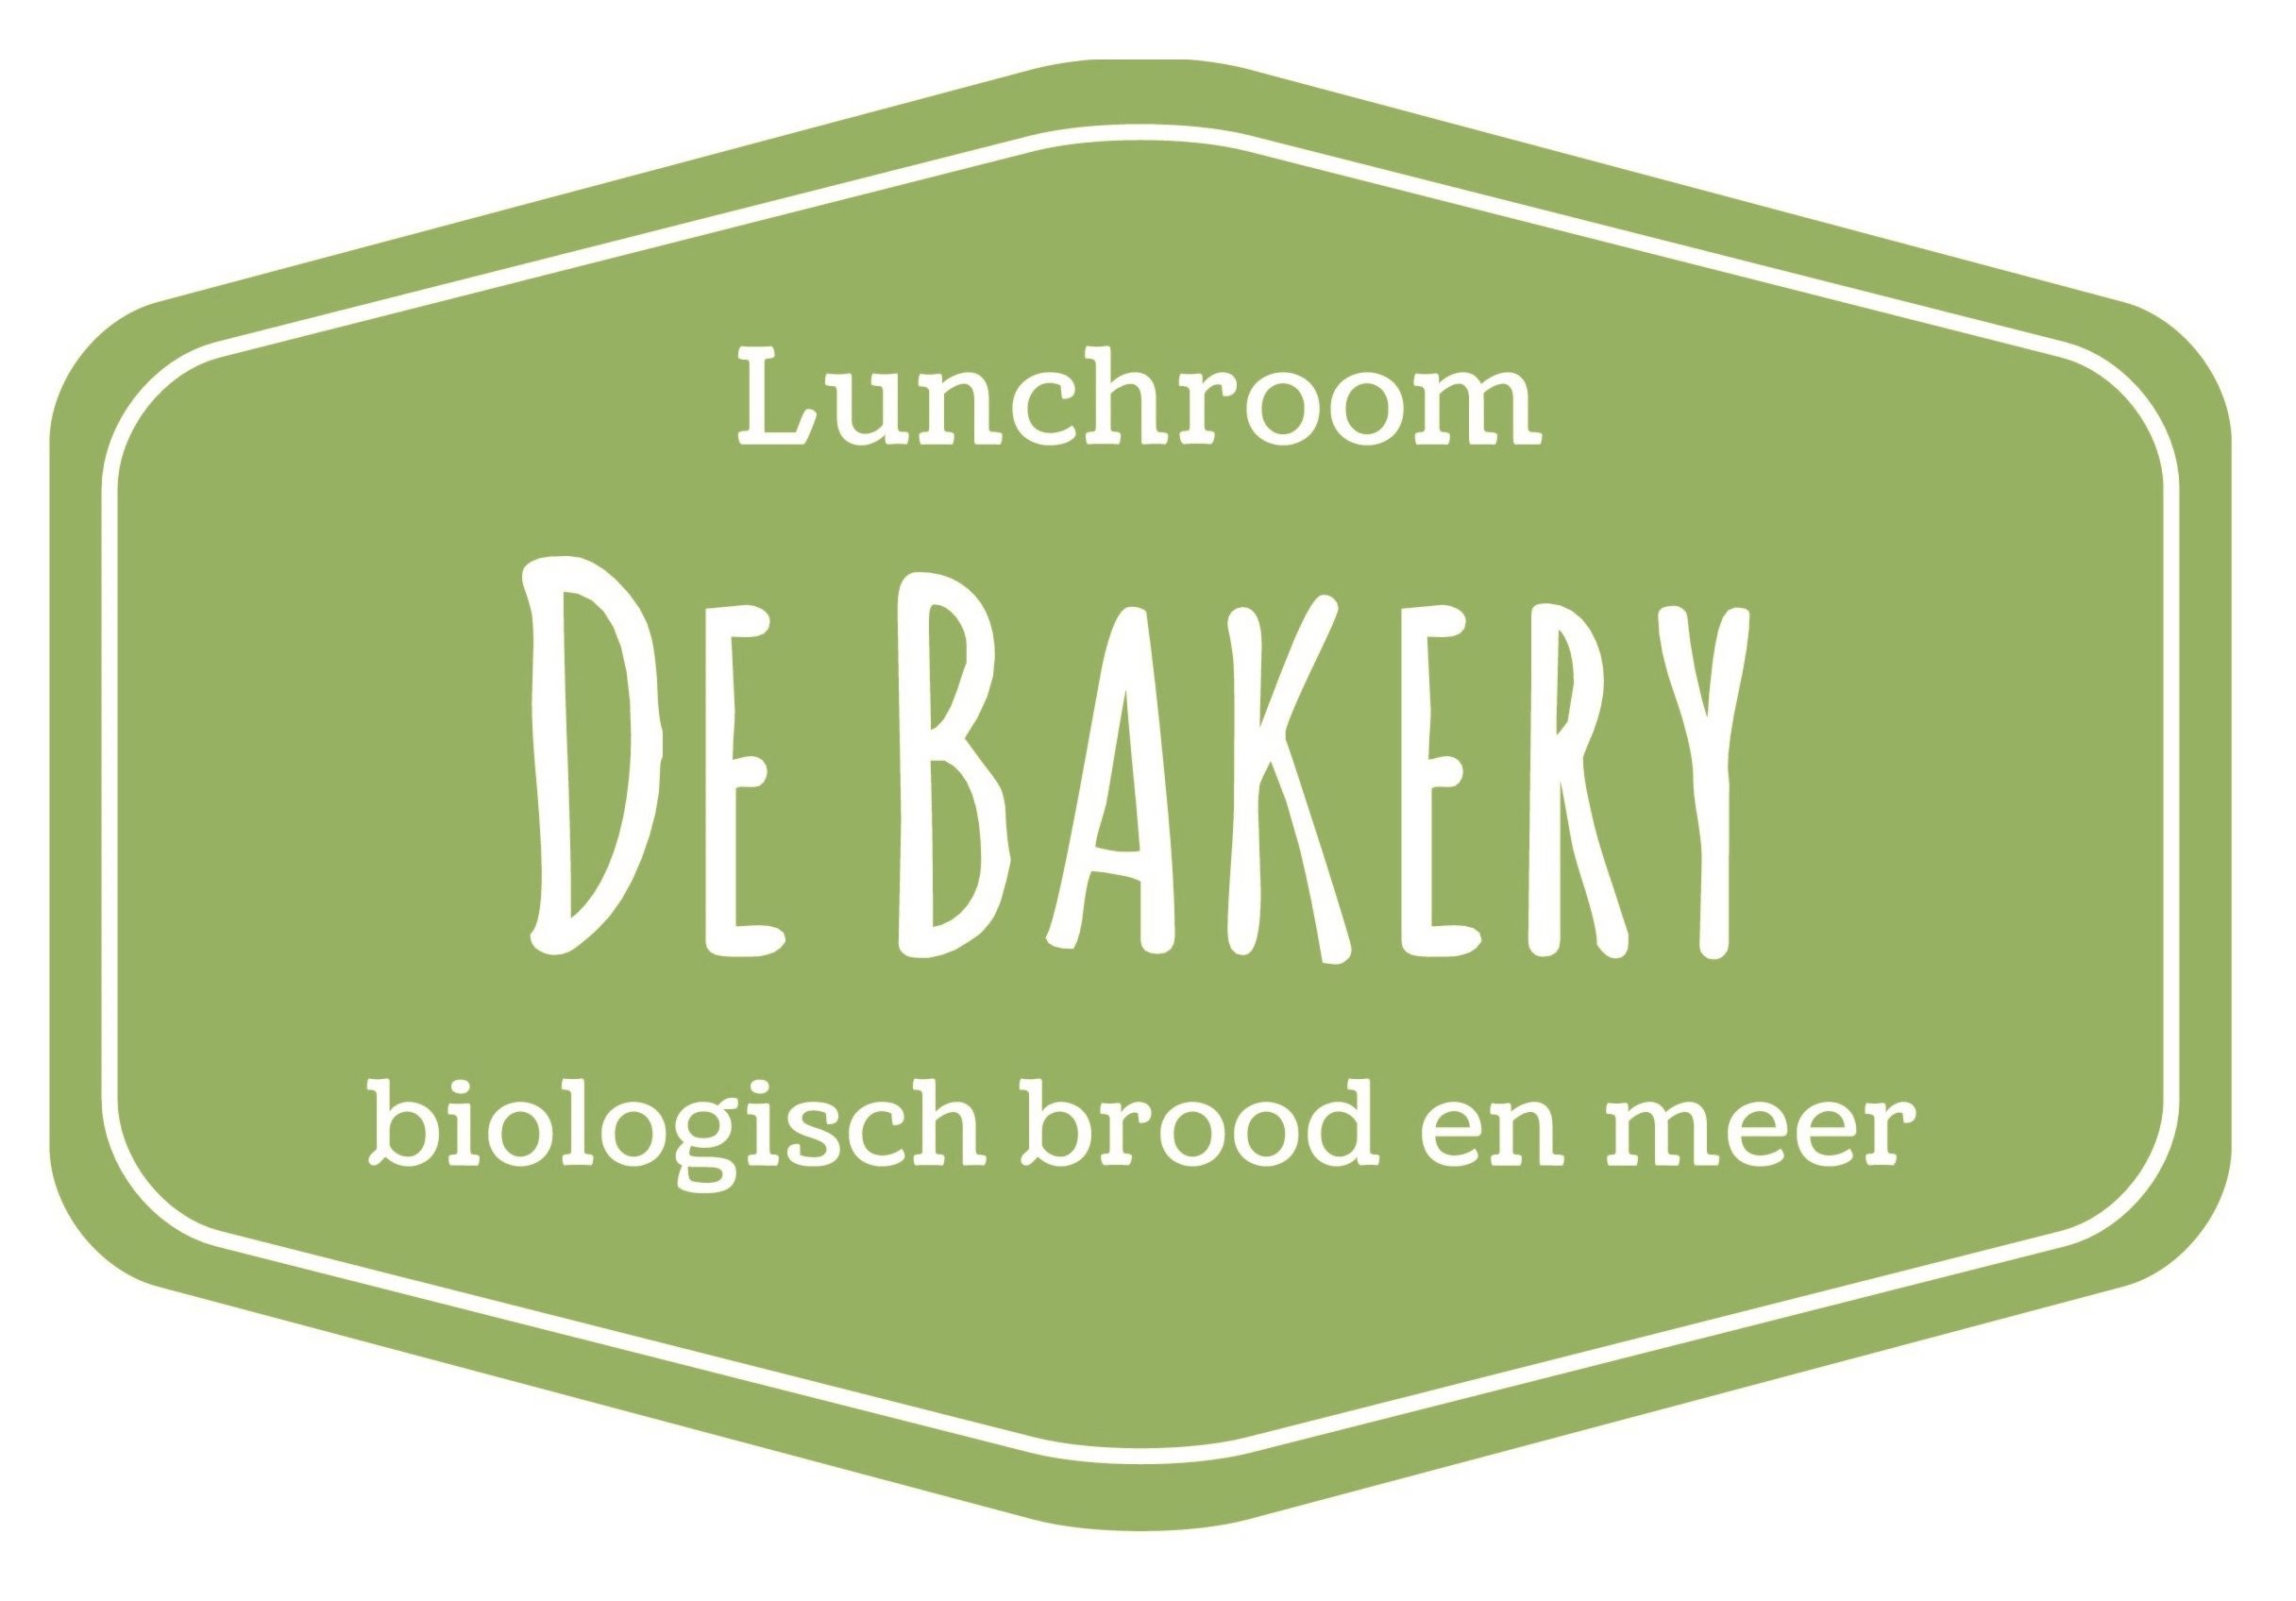 Lunchroom De Bakery